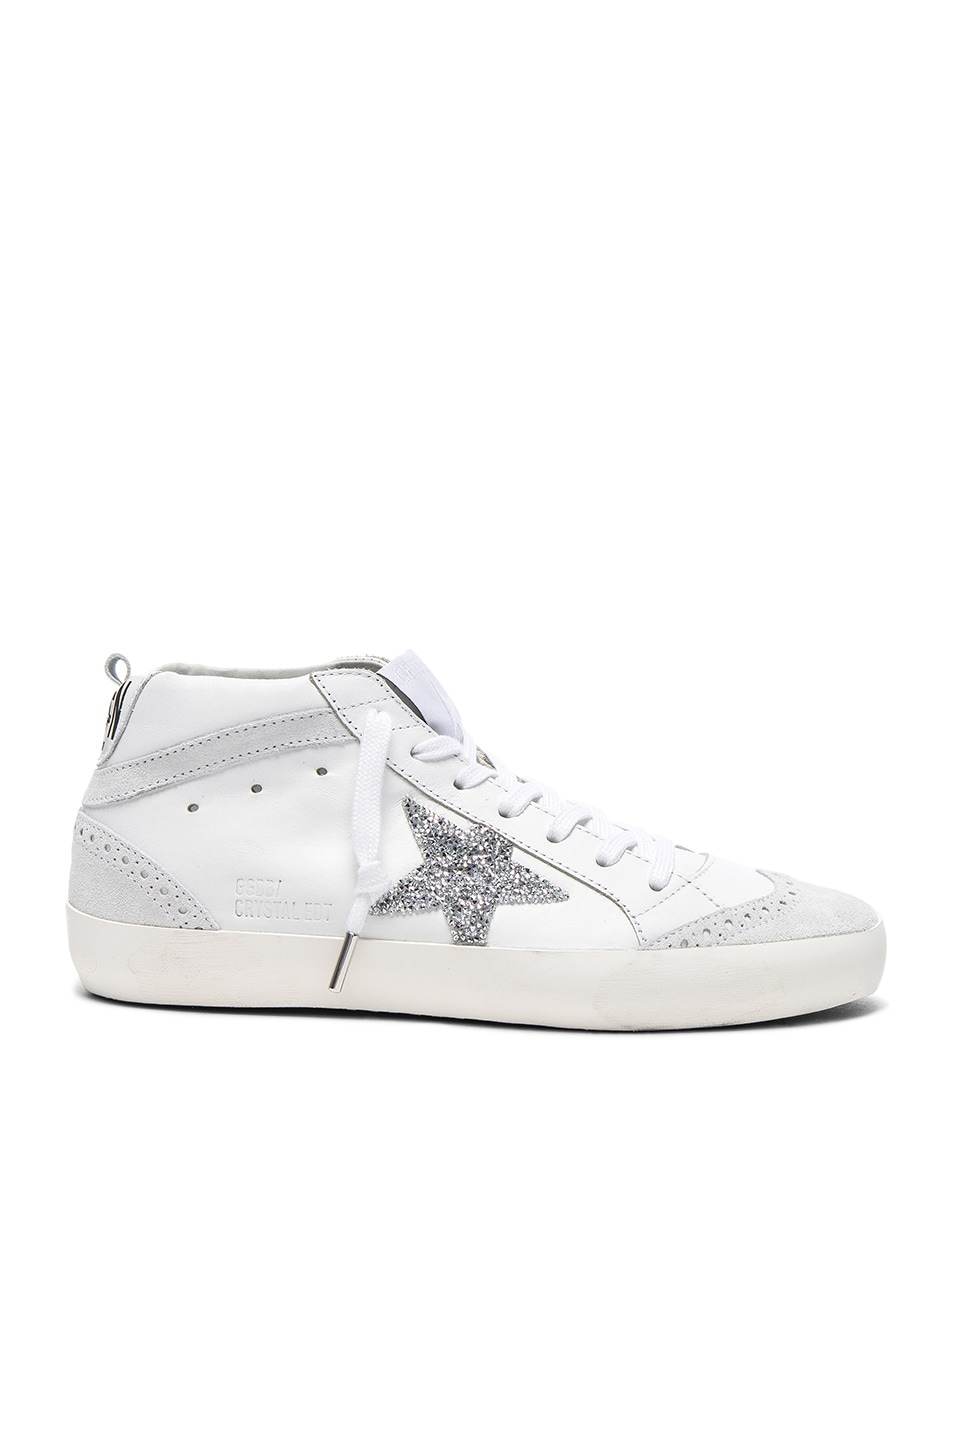 Image 1 of Golden Goose Swarovski Crystal Embellished Mid Star Sneakers in White & Crystals